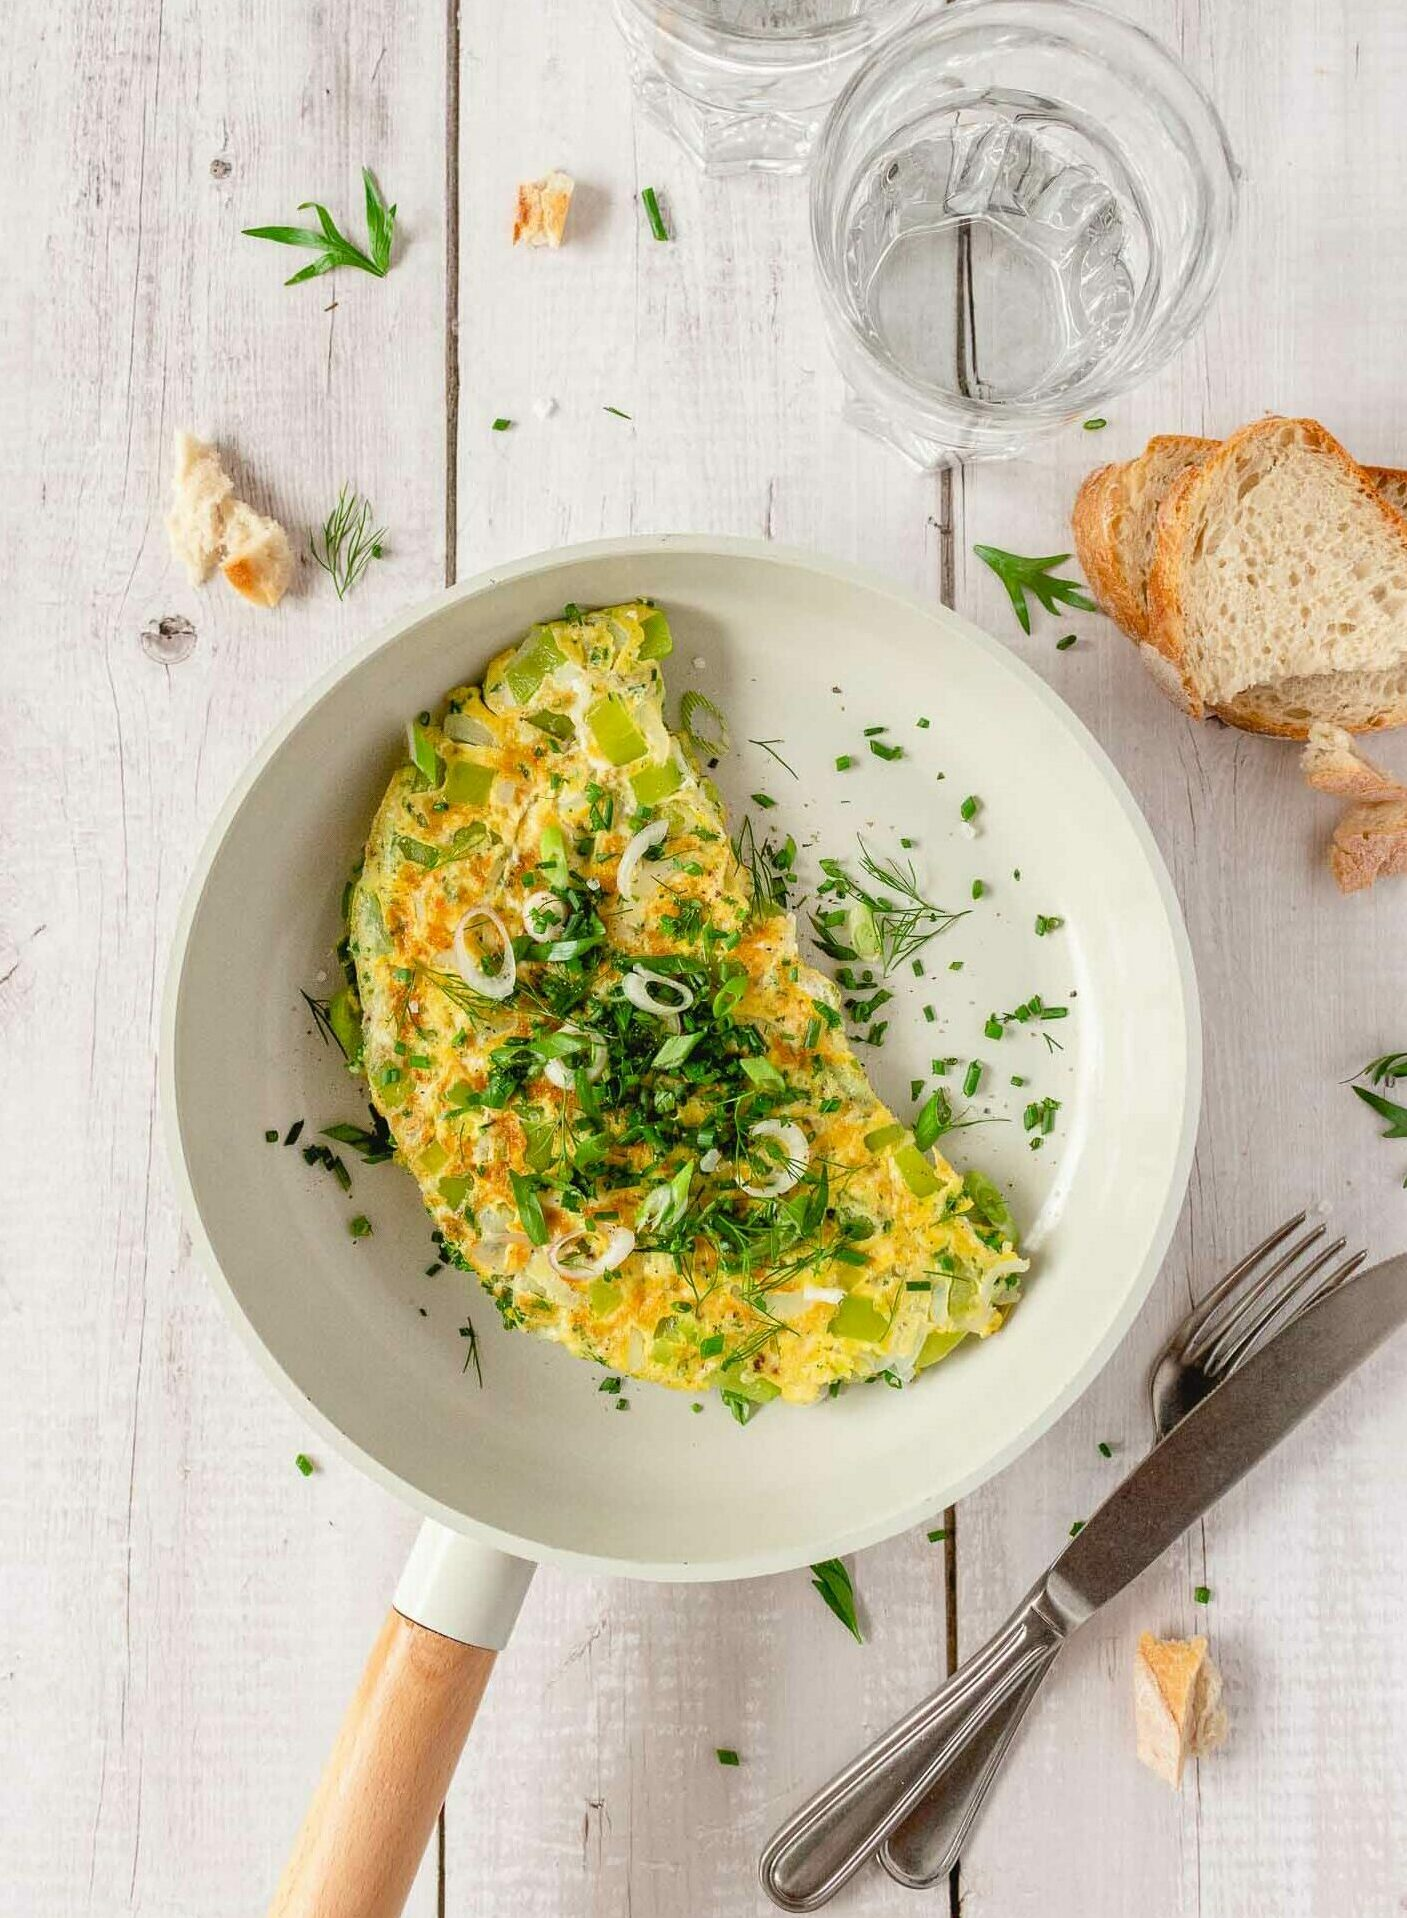 Spicy Herb And Greens Omelette